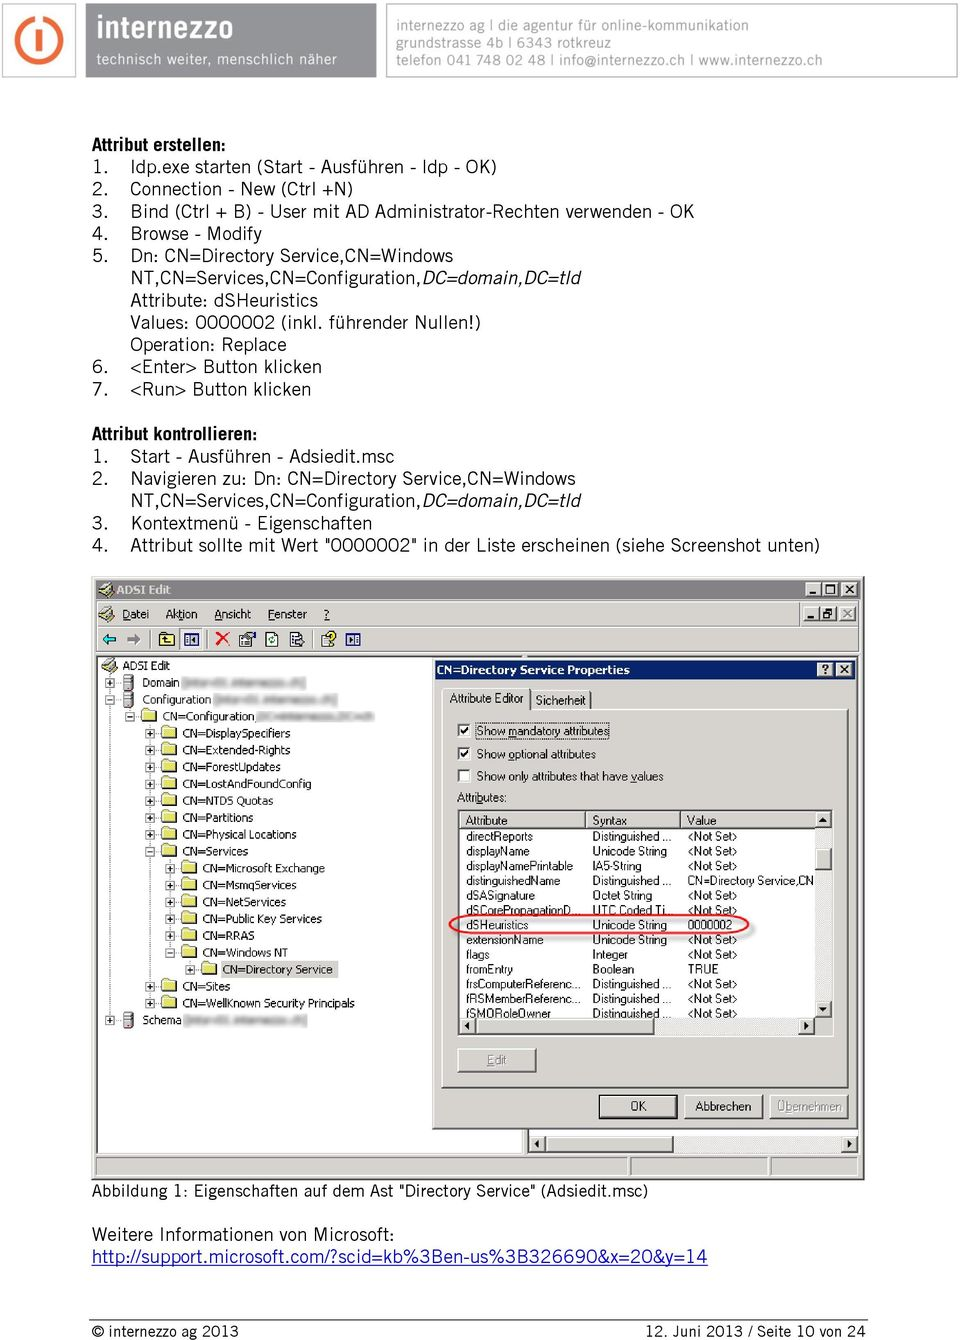 <Run> Button klicken Attribut kontrollieren: 1. Start - Ausführen - Adsiedit.msc 2. Navigieren zu: Dn: CN=Directory Service,CN=Windows NT,CN=Services,CN=Configuration,DC=domain,DC=tld 3.